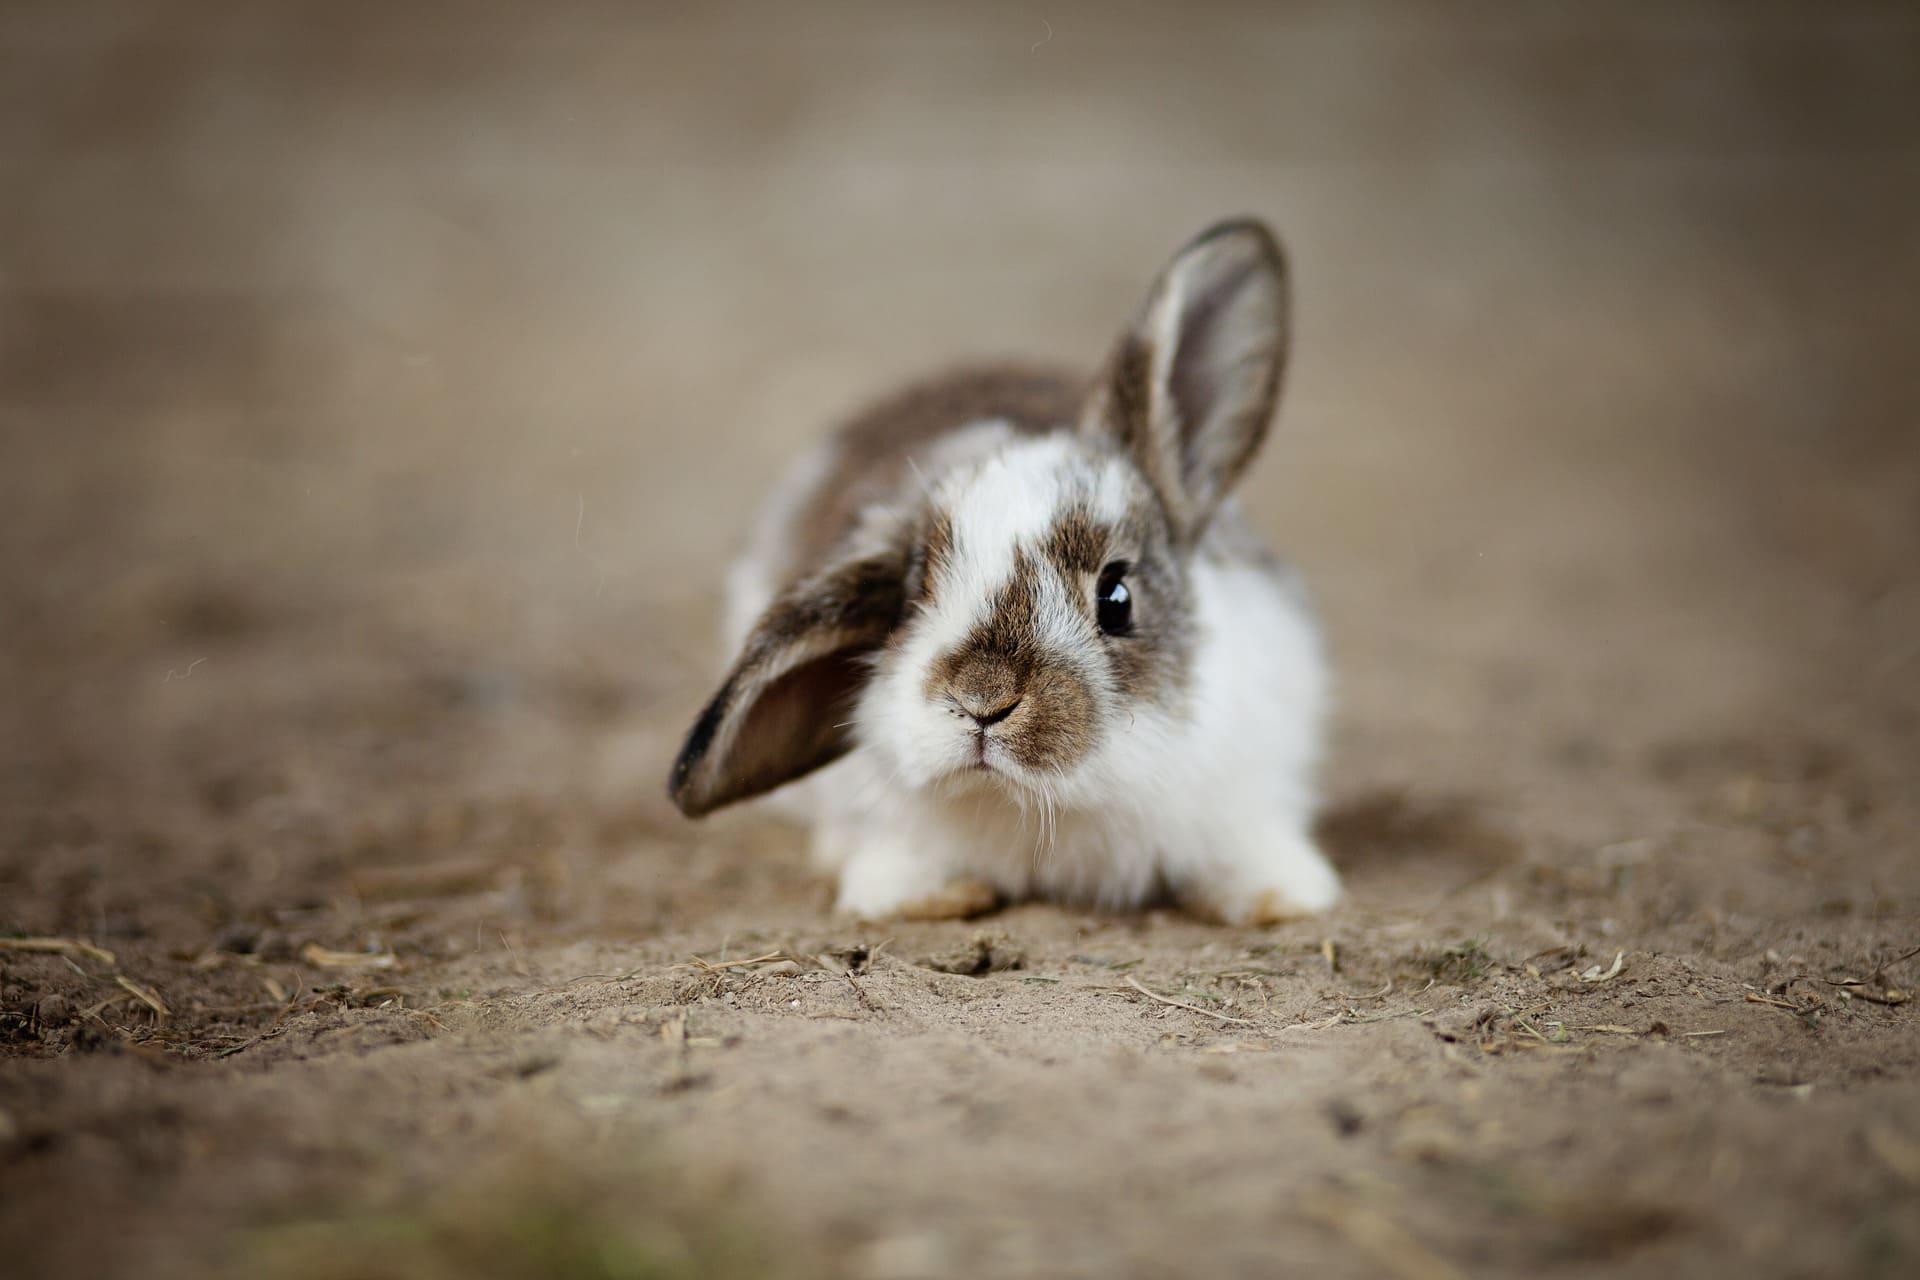 A small bunny stares at the camera  | Source: Pixabay